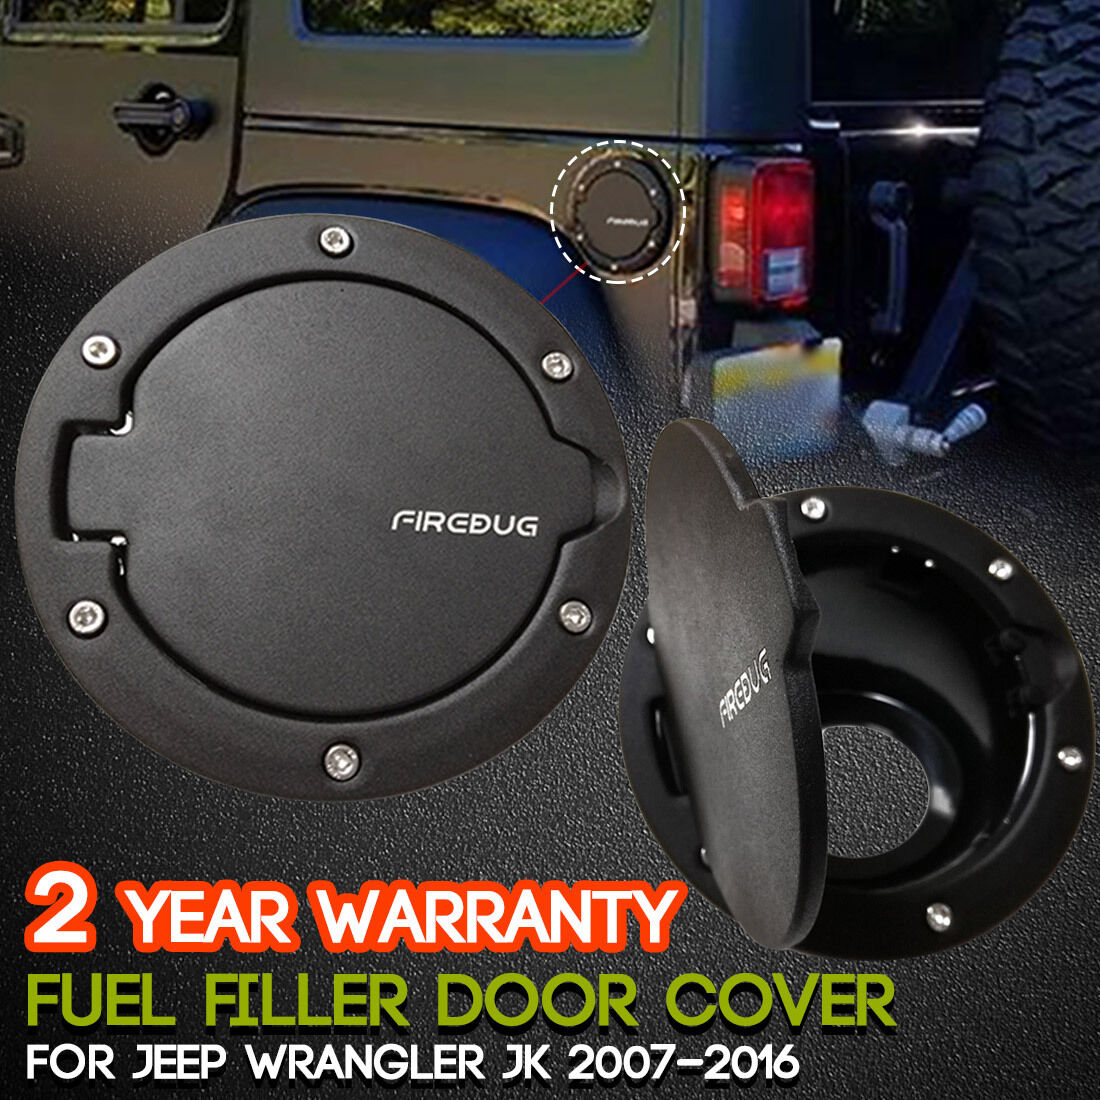 Stainless Steel Jeep Wrangler Fuel Tank Cover Gas Cap Jk Yj Filter 1 Of 6only 0 Available